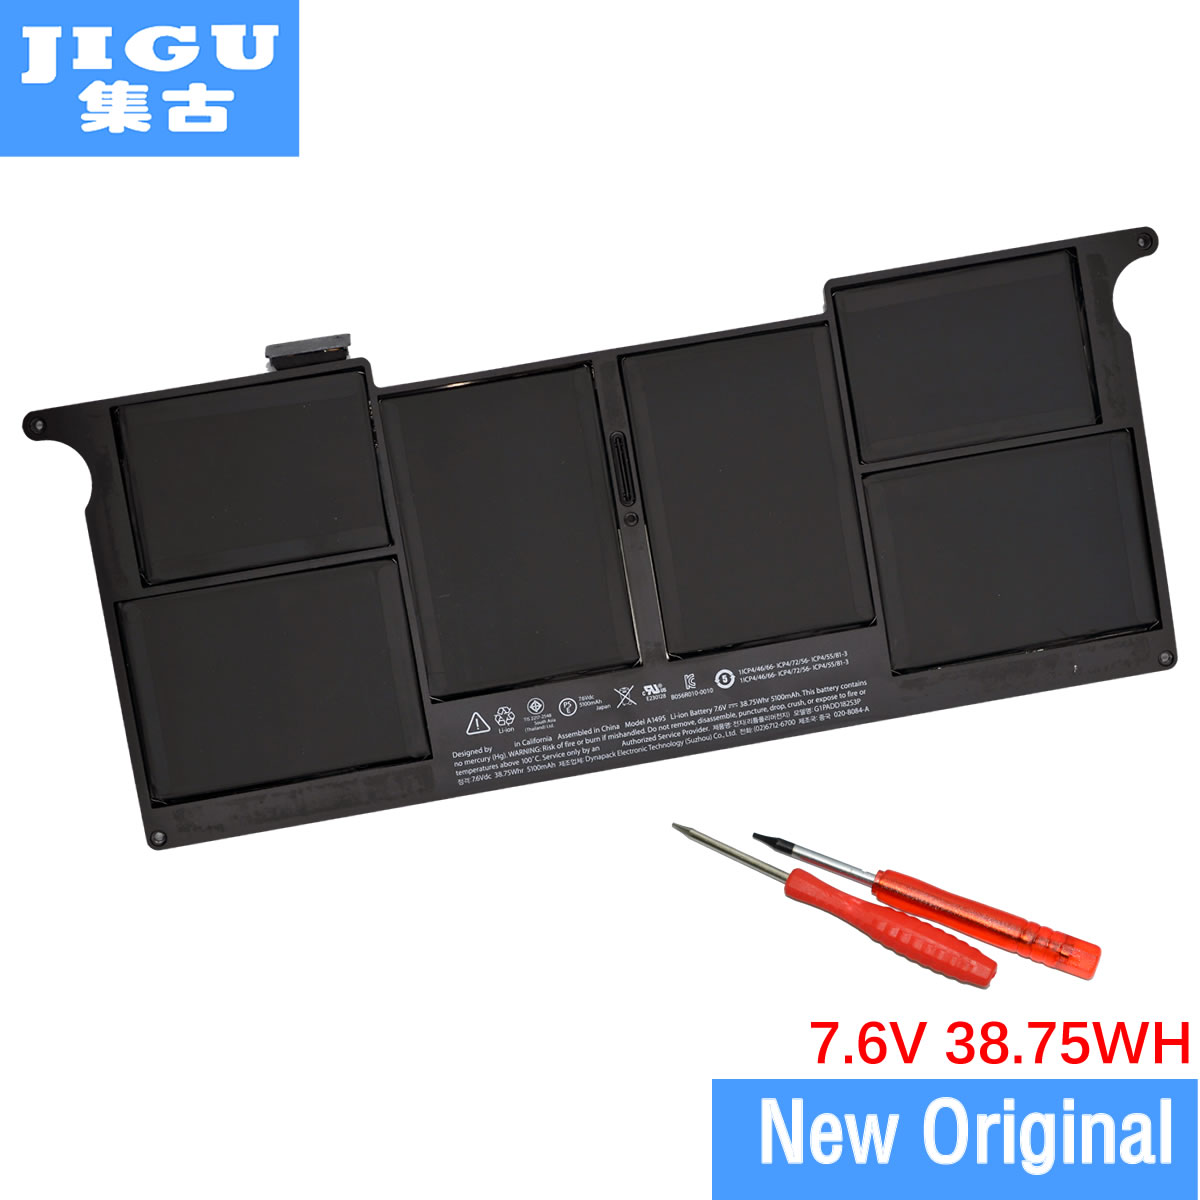 JIGU A1495 Original Laptop <font><b>Batterie</b></font> Für APPLE für <font><b>MacBook</b></font> <font><b>Air</b></font> <font><b>11</b></font>